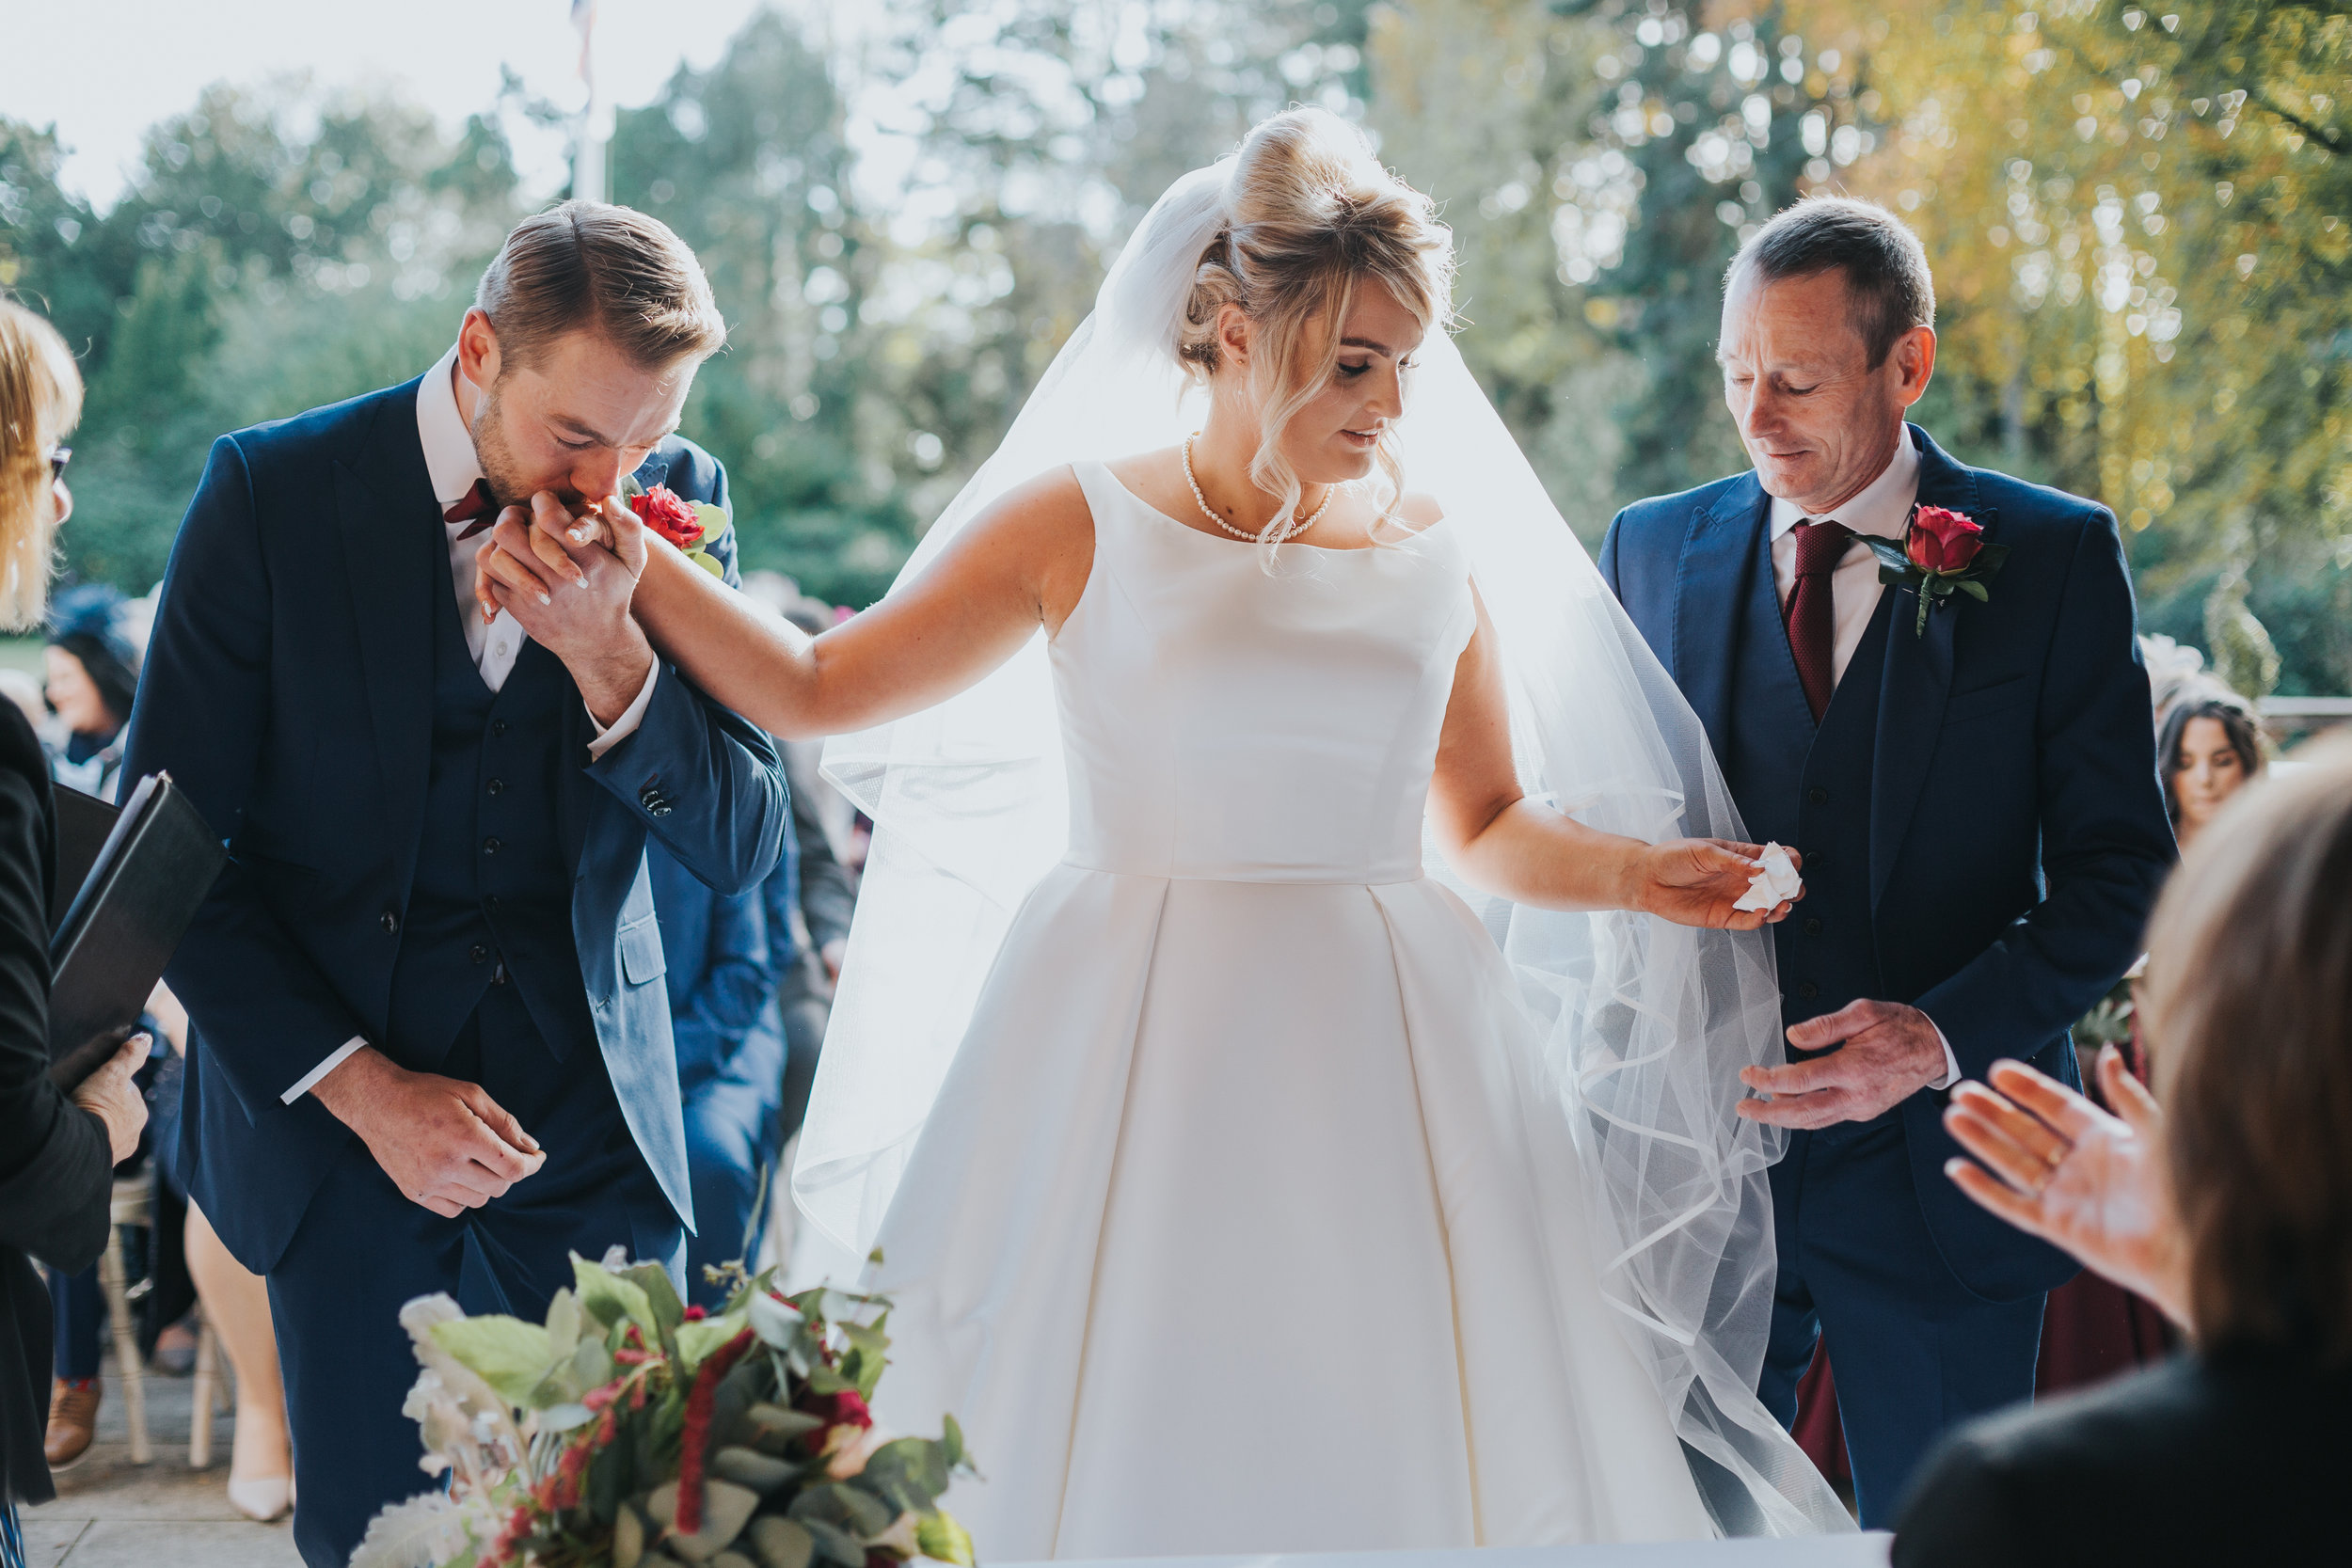 The Groom kisses the brides hand, while her father gives her a tissue to wipe their tears and snot probably.